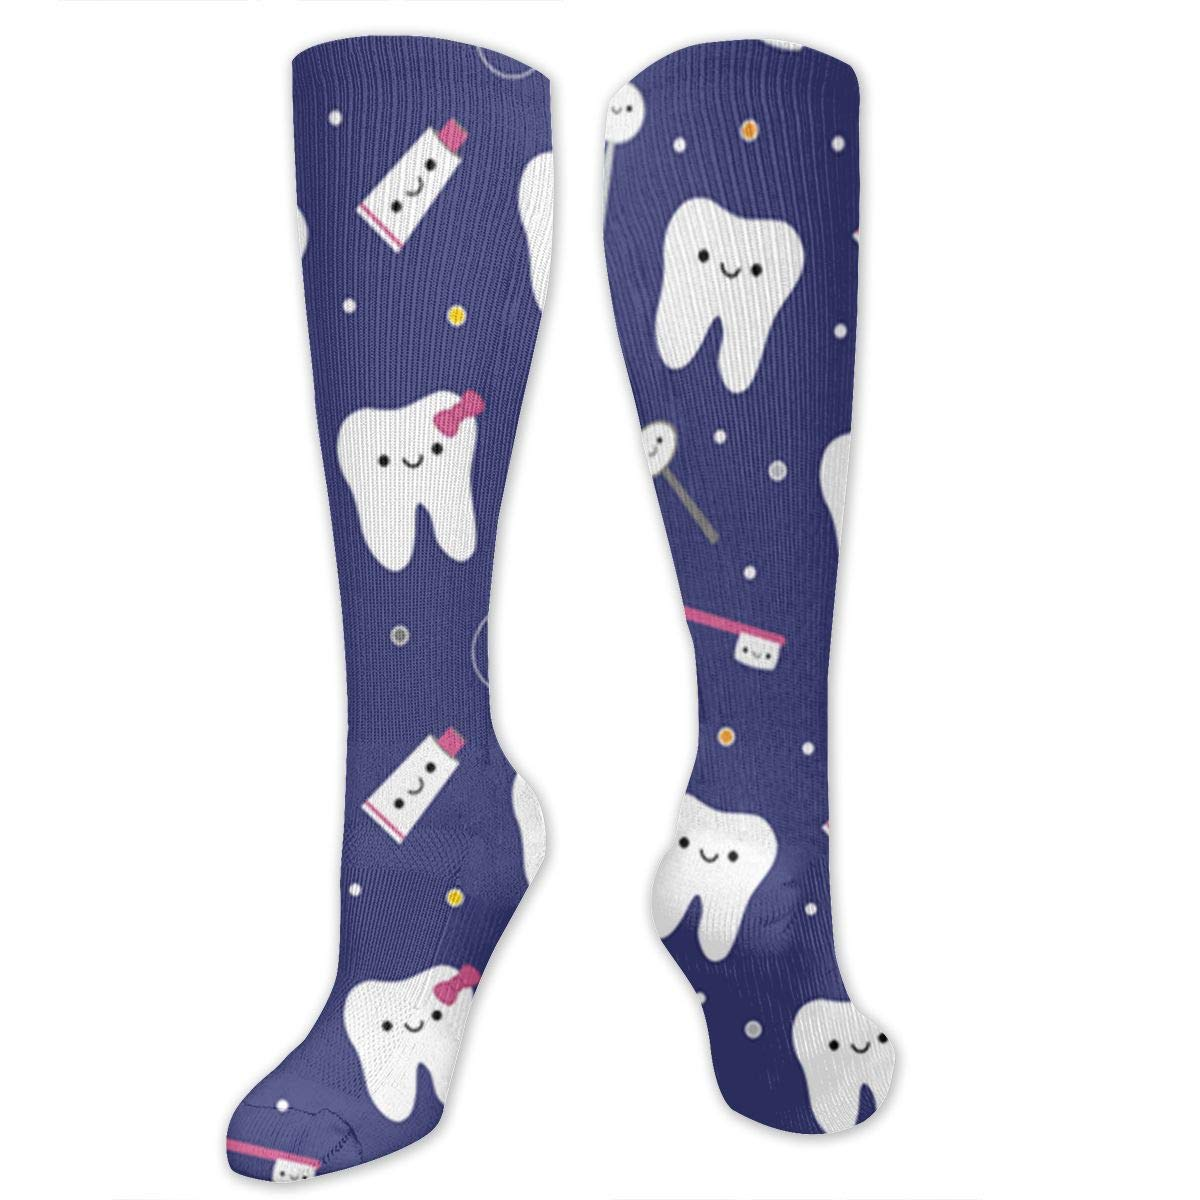 Best Medical,for Running Varicose Veins Travel Ygsdf59 White Teeth Compression Socks for Women and Men Athletic